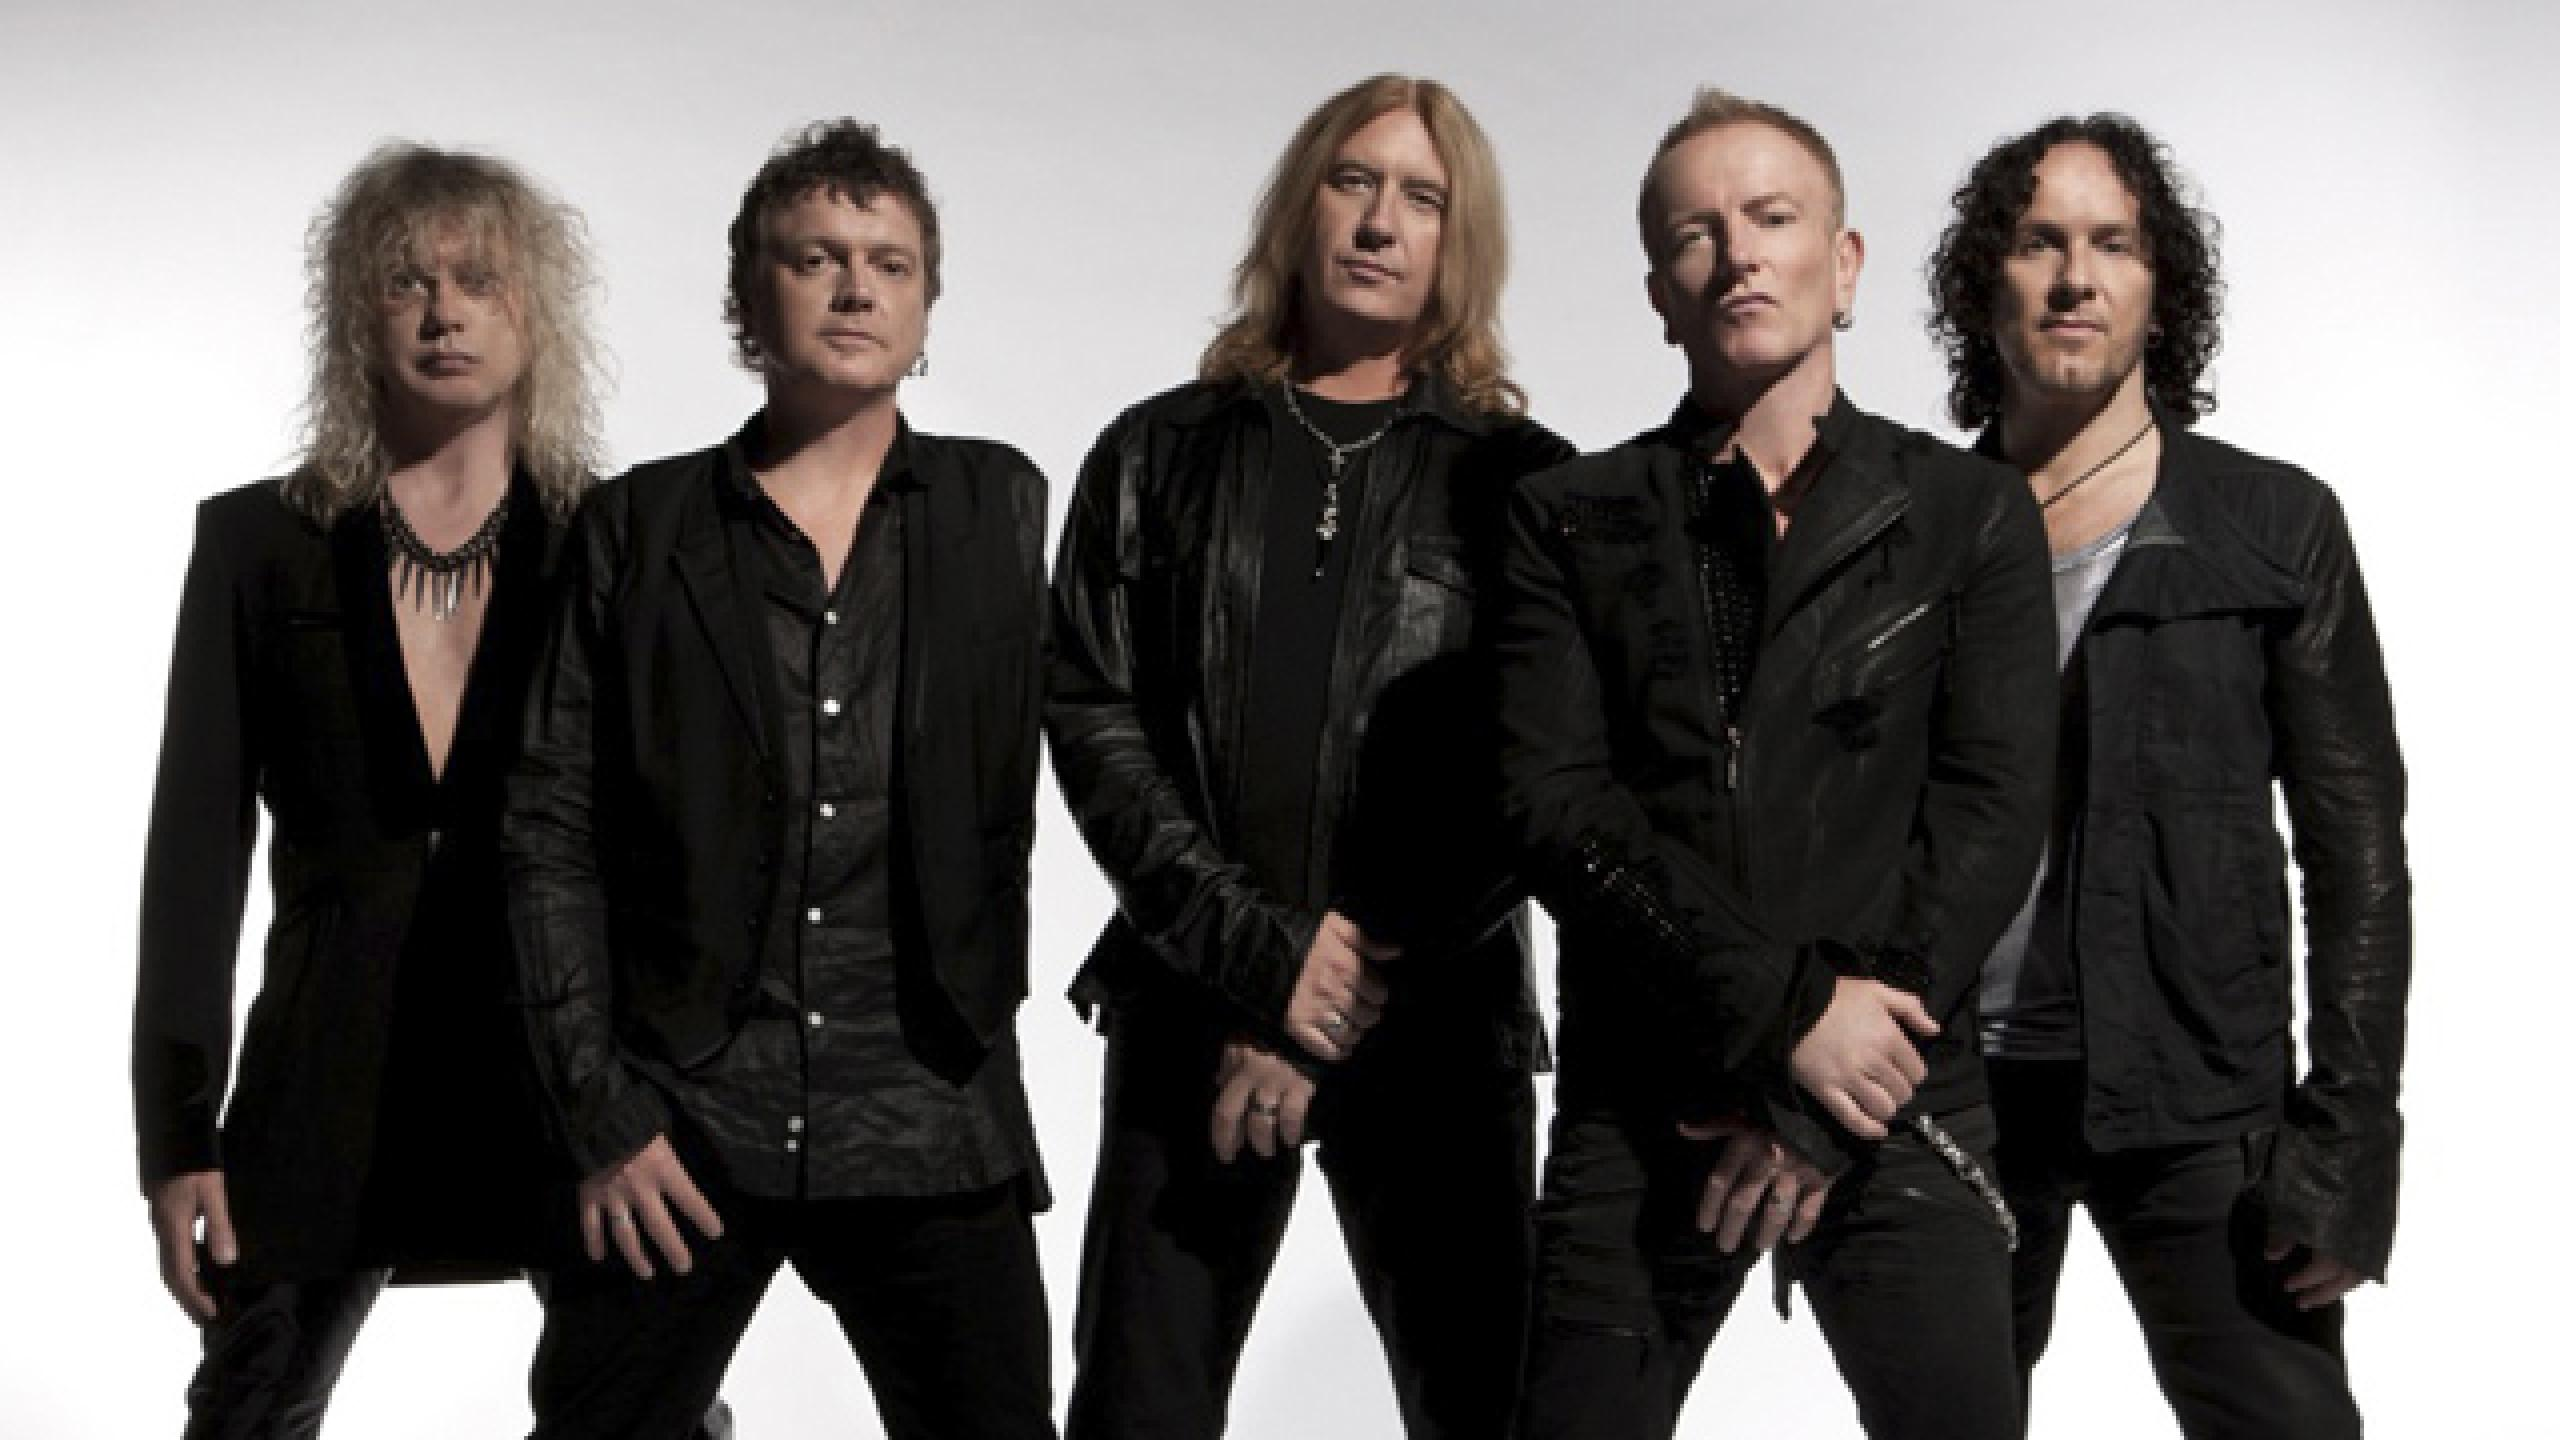 Def Leppard Tour 2020 Dates Def Leppard tour dates 2019 2020. Def Leppard tickets and concerts